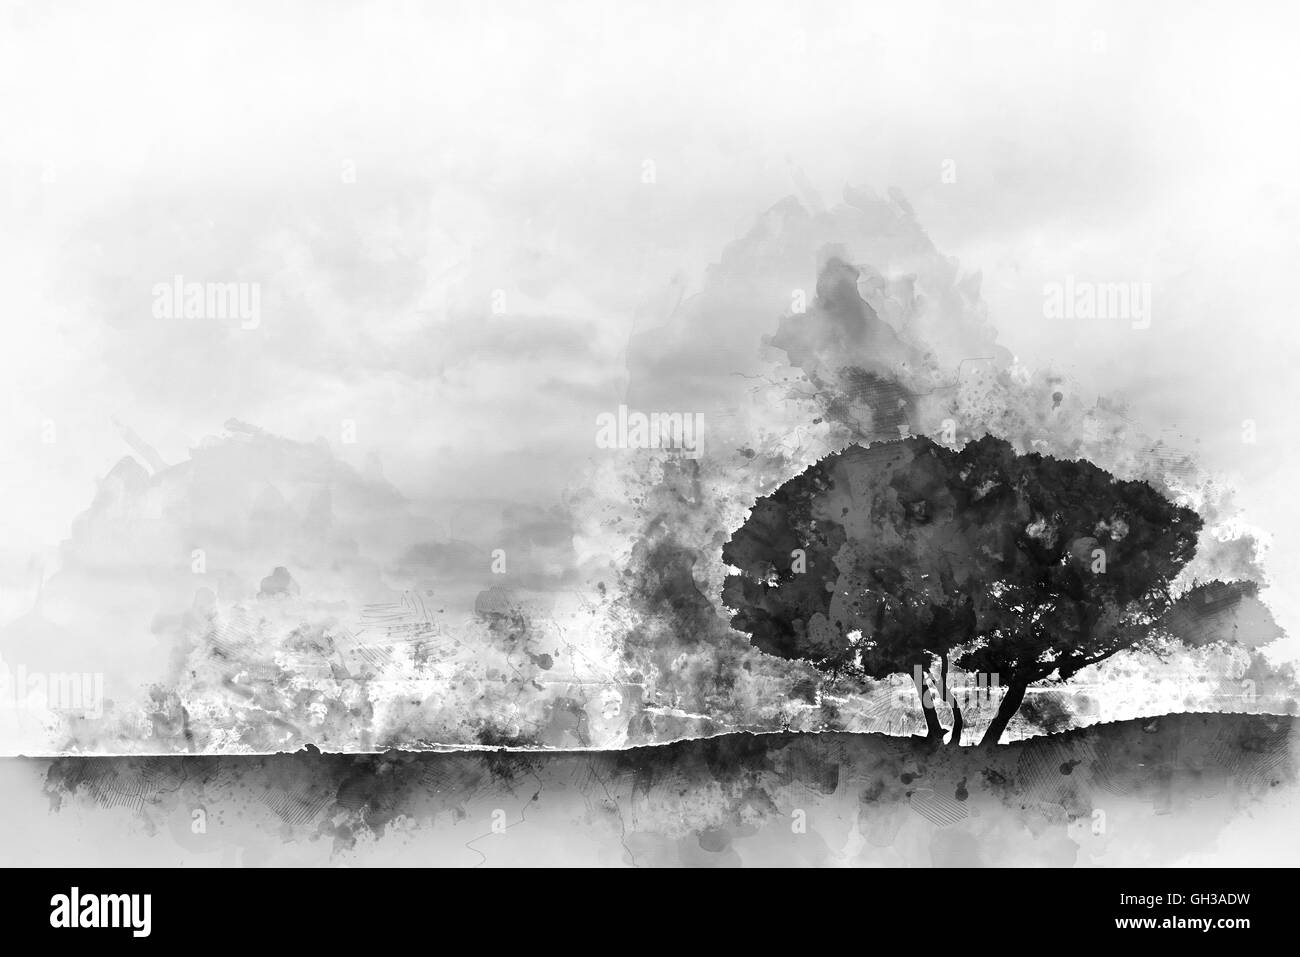 Silhouette of a tree. Digital watercolor monochrome painting - Stock Image